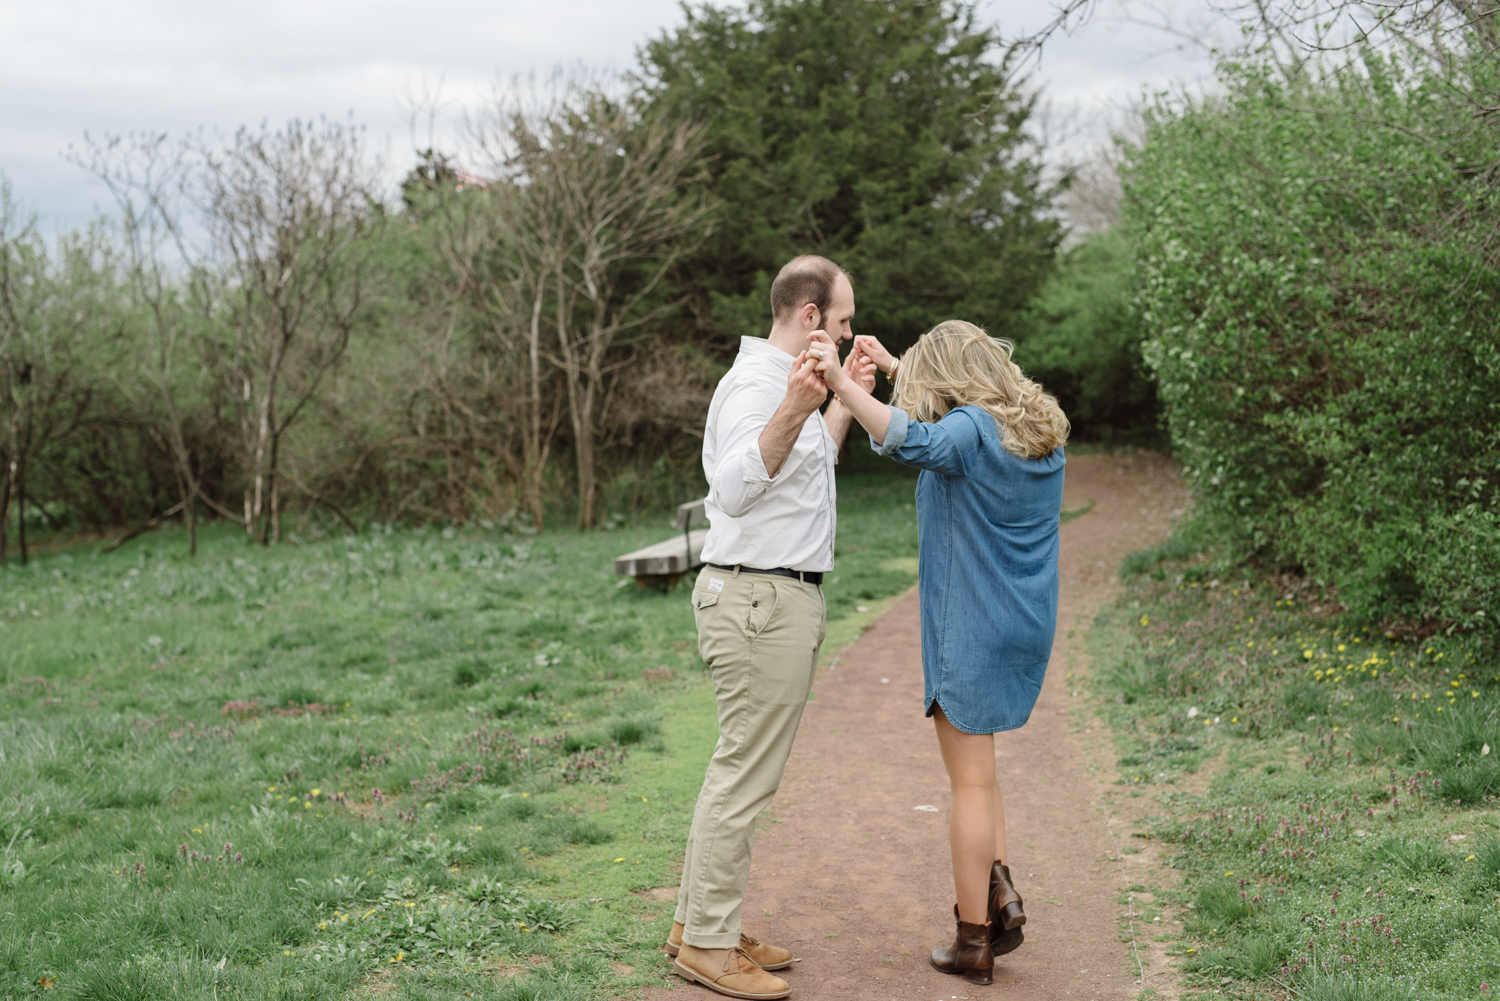 Matt+Melissa- Meadowlands Environmental Center Engagement Session- New Jersey- Olivia Christina Photo-56.JPG